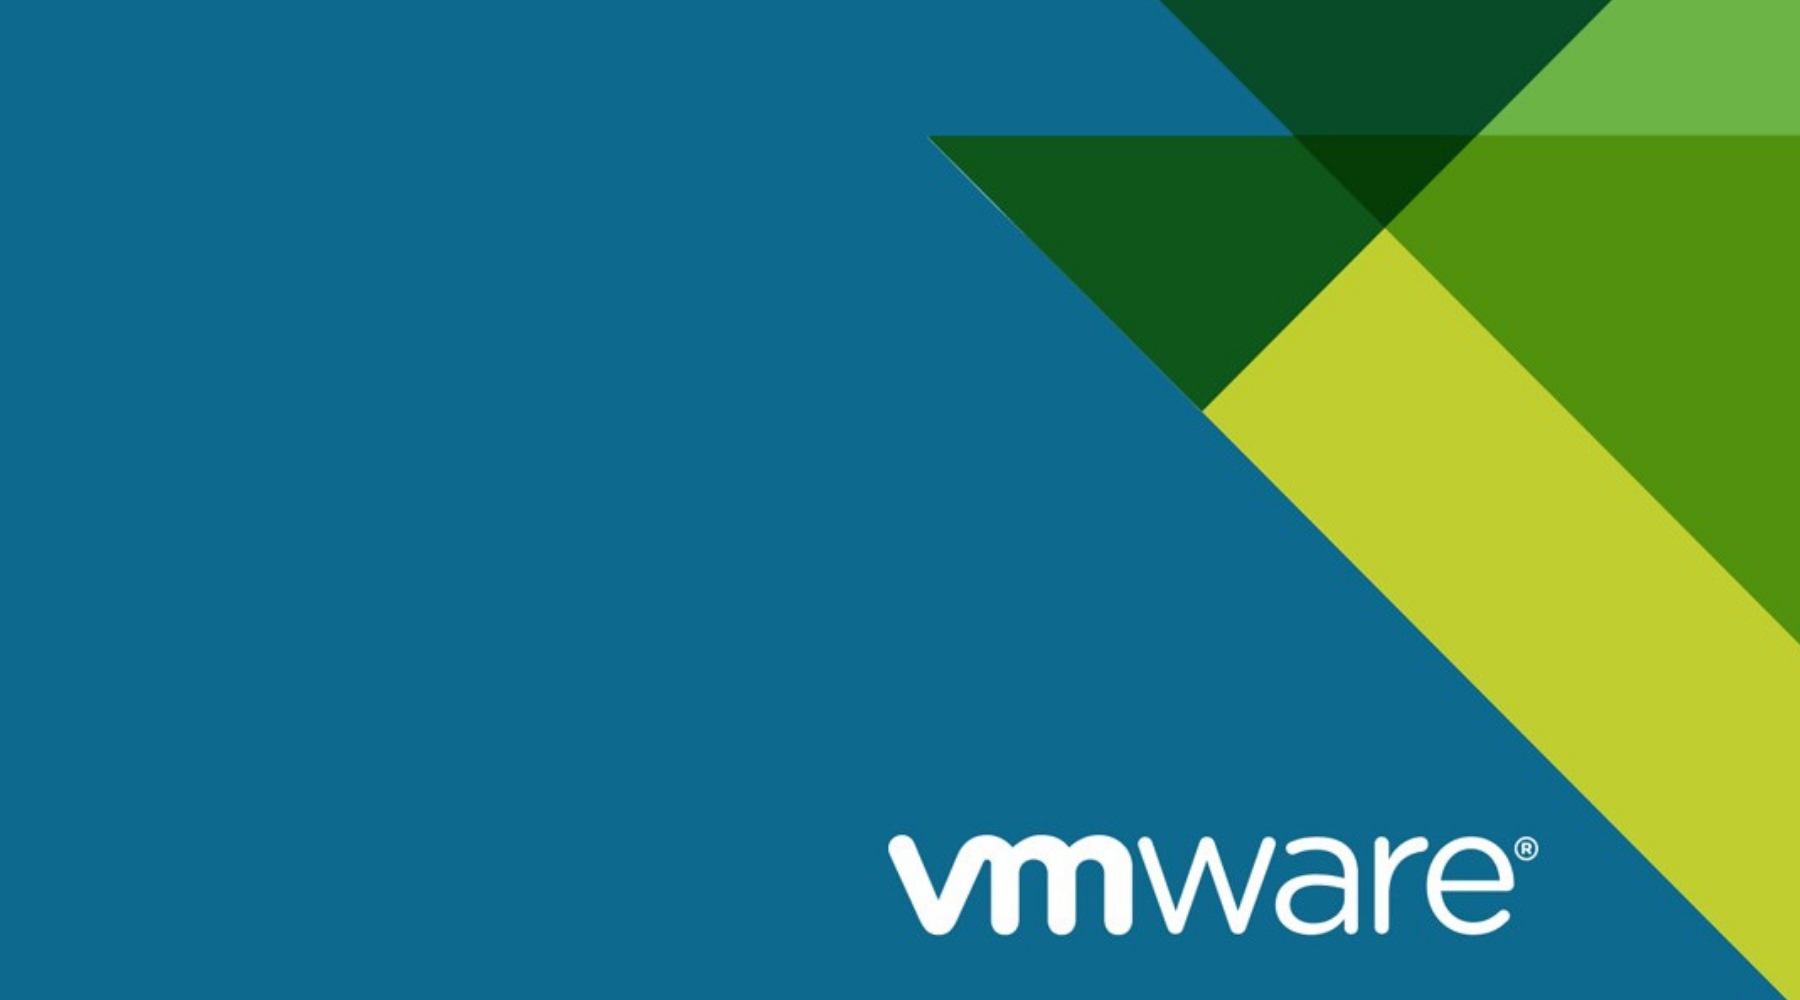 ULTIMATE List of vmware blogs and Sites that Allow Guest Blogging wallpaper